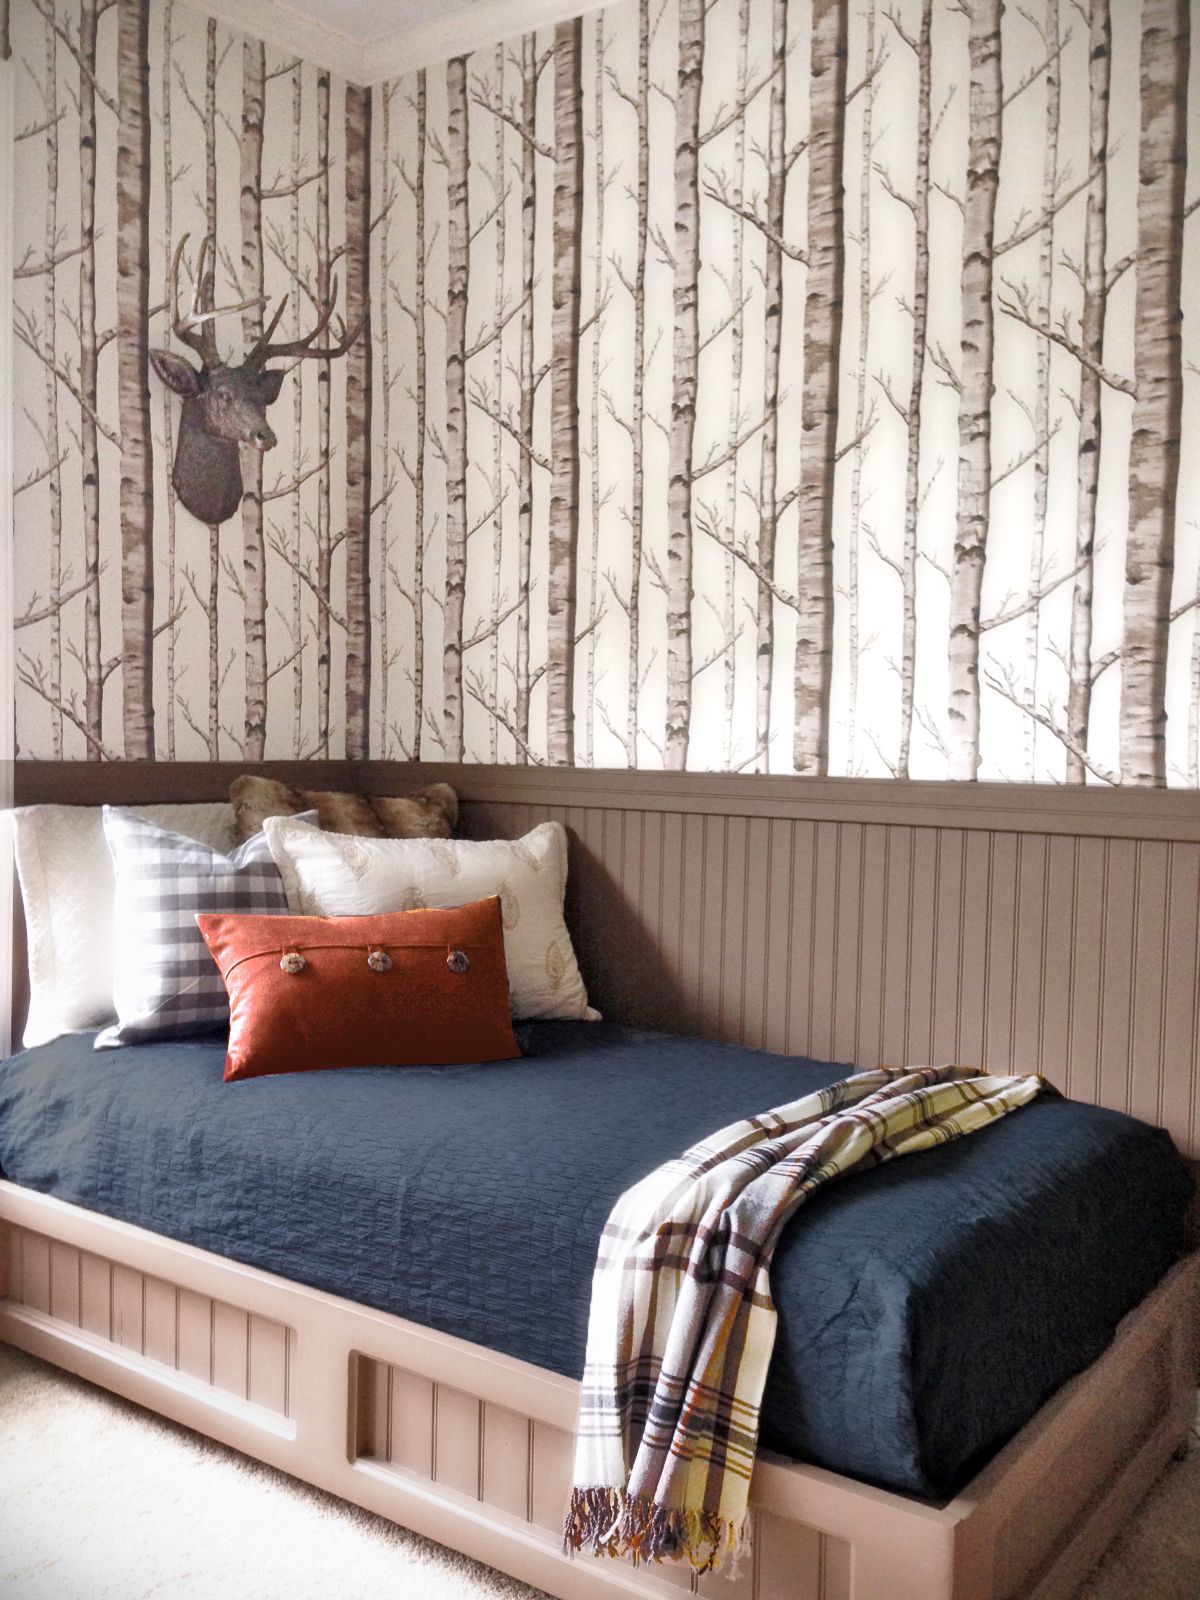 awesome cabin lighting cabins bedding log house decor passion rustic ideas images themed decorating by fresh bedroom